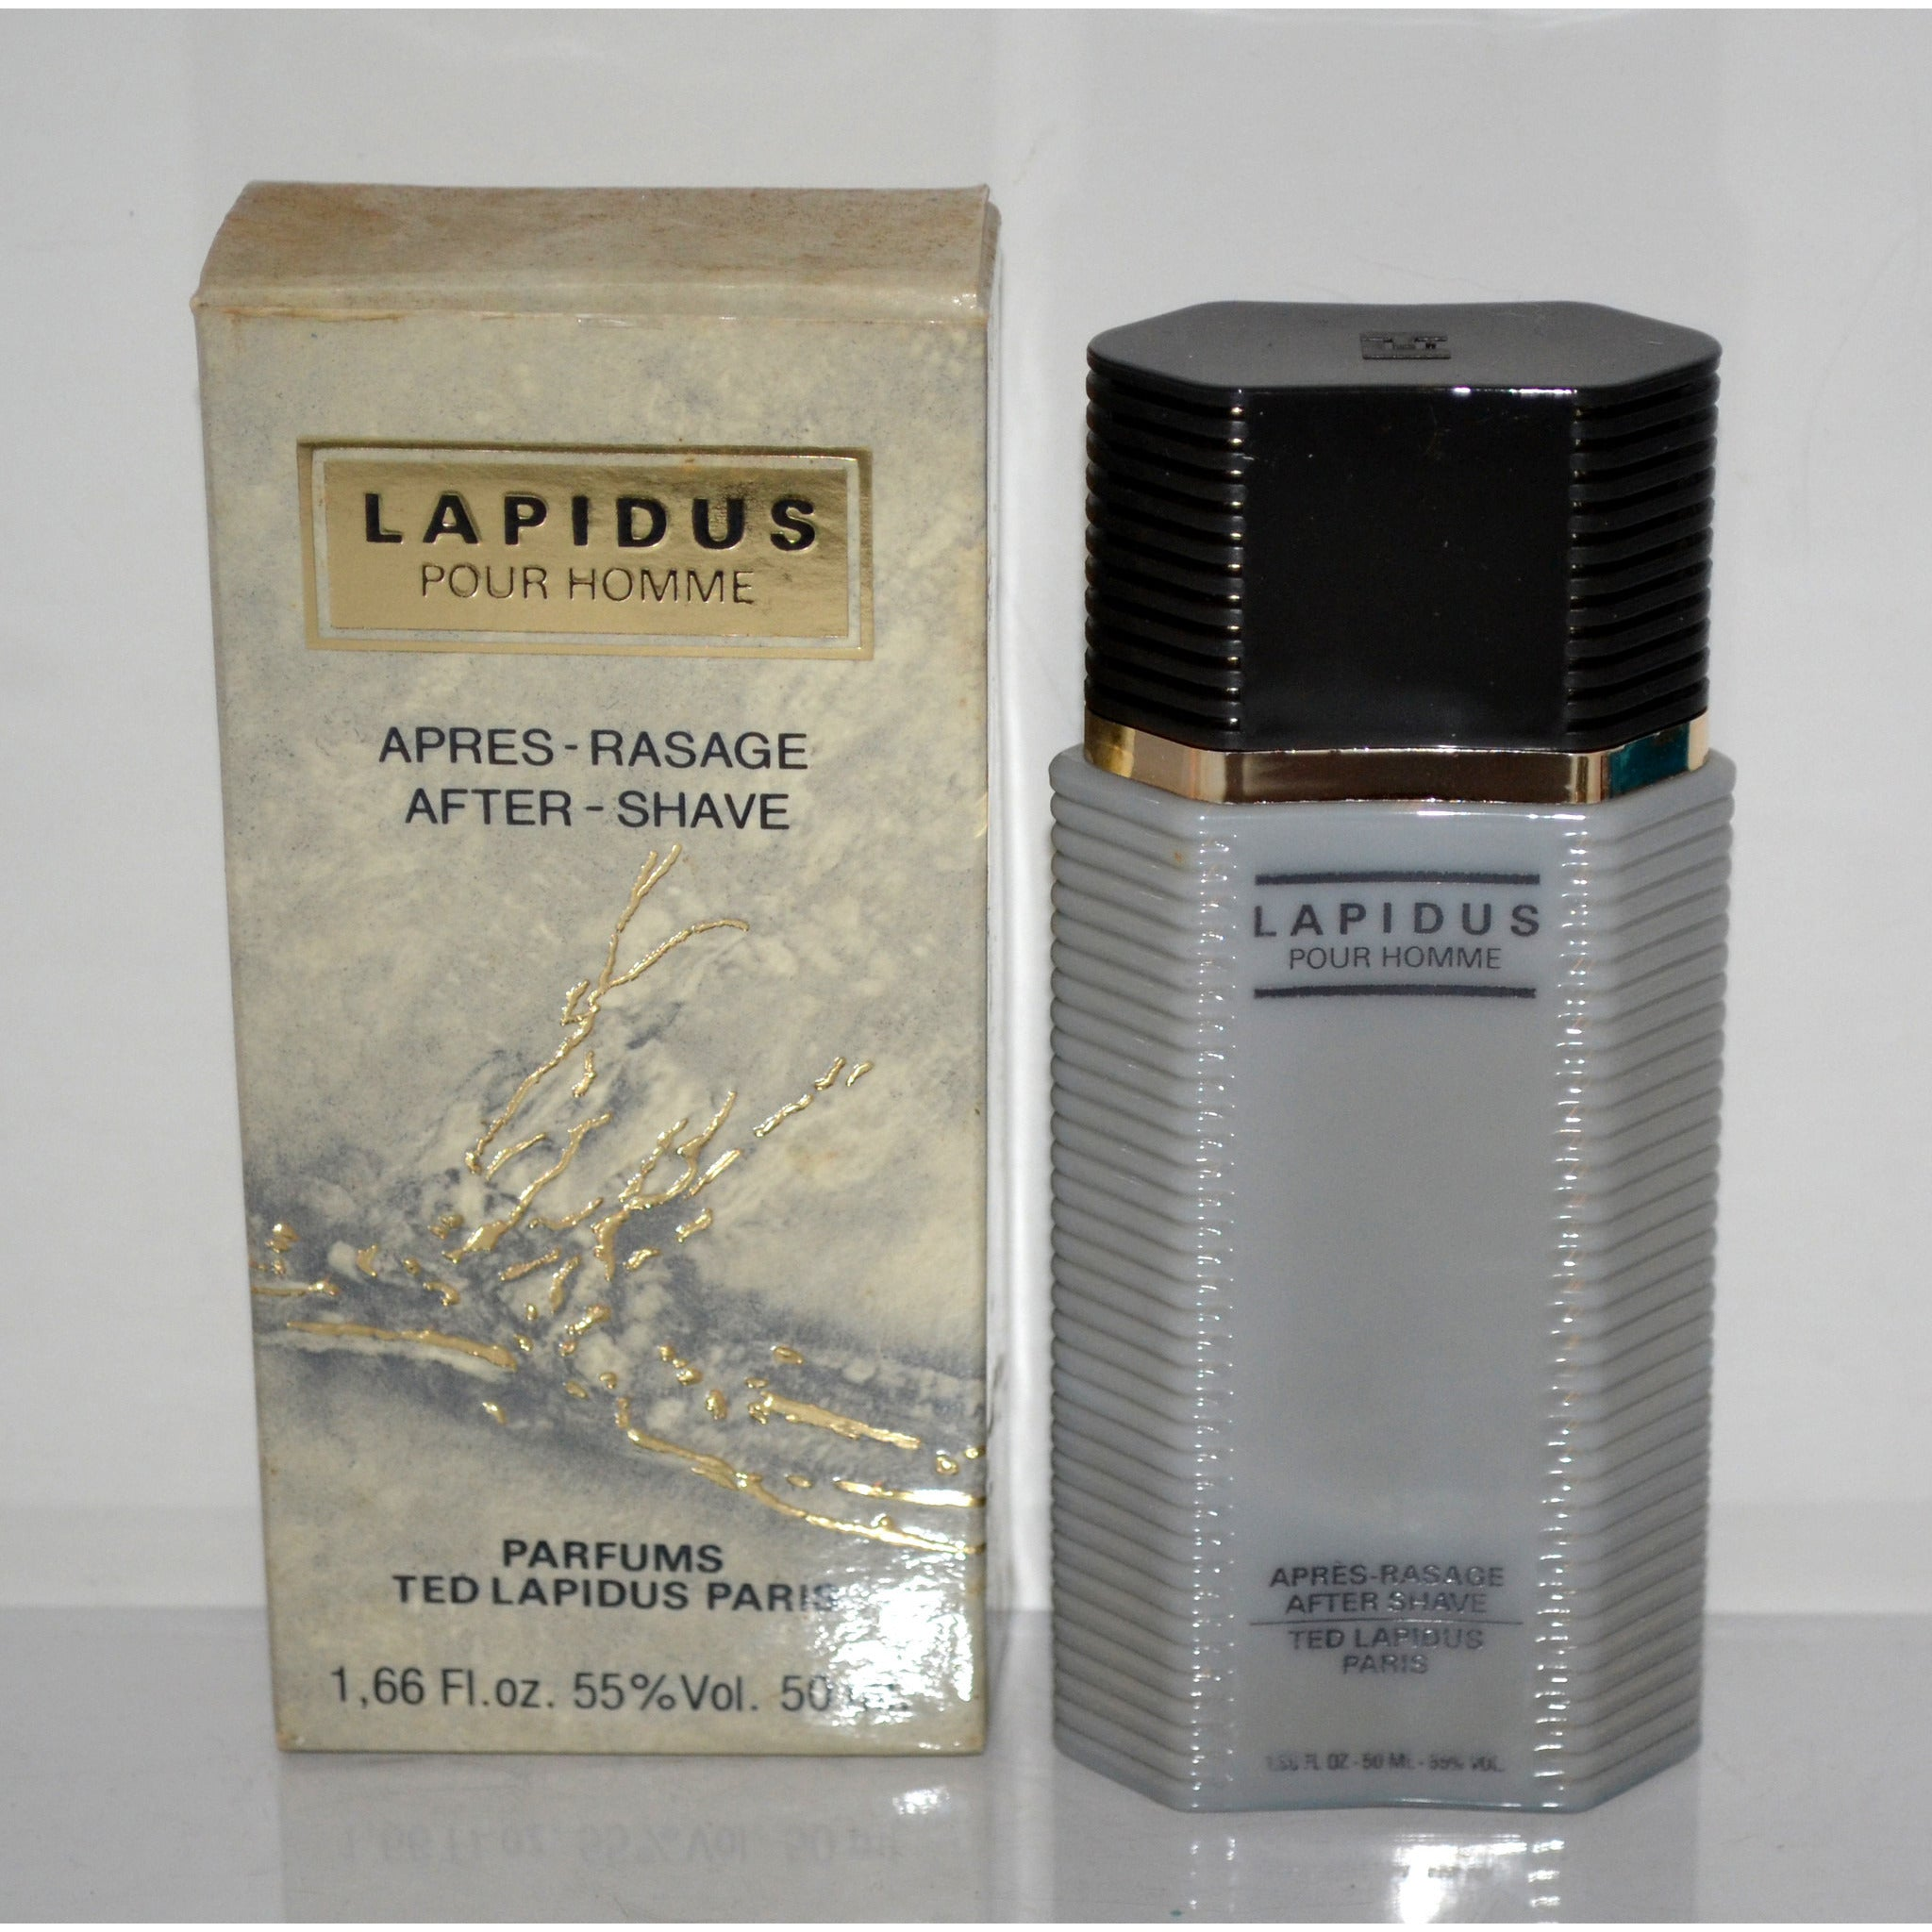 Vintage Lapidus Pour Homme After Shave Quirkyfinds